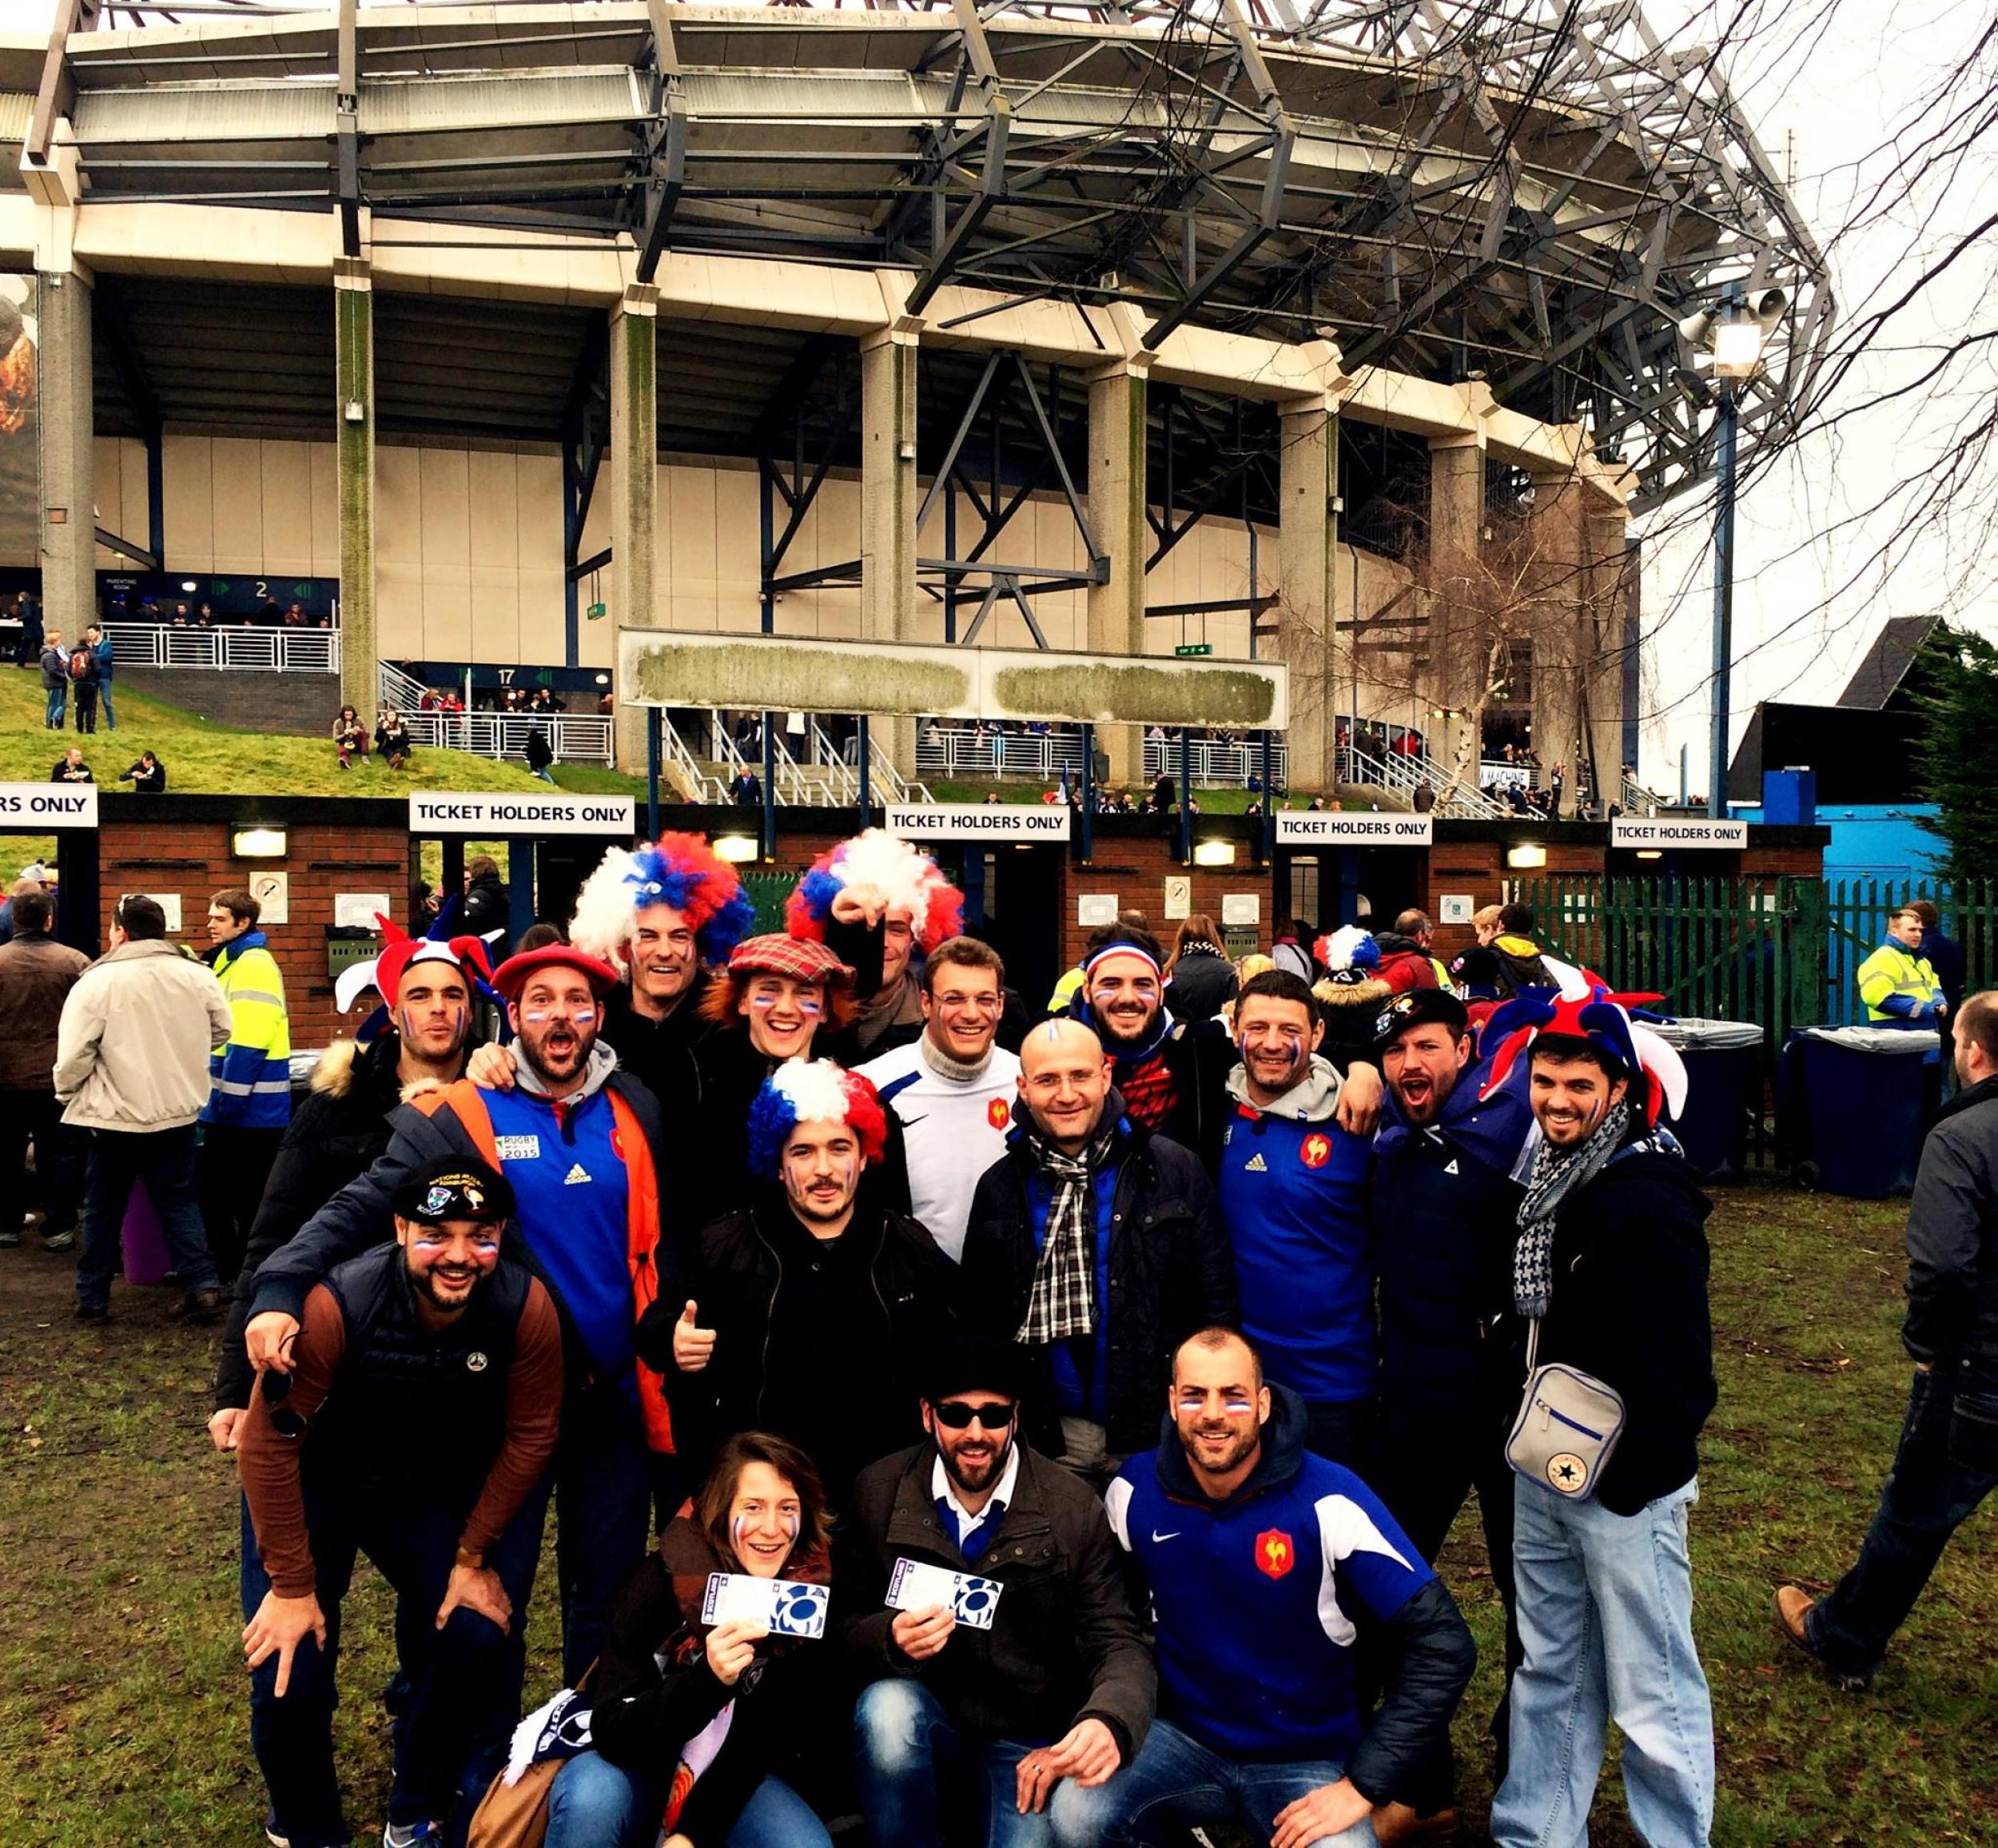 Temoignage Voyage Rugby 6 NATIONS - Ecosse v France - Groupe Couleur